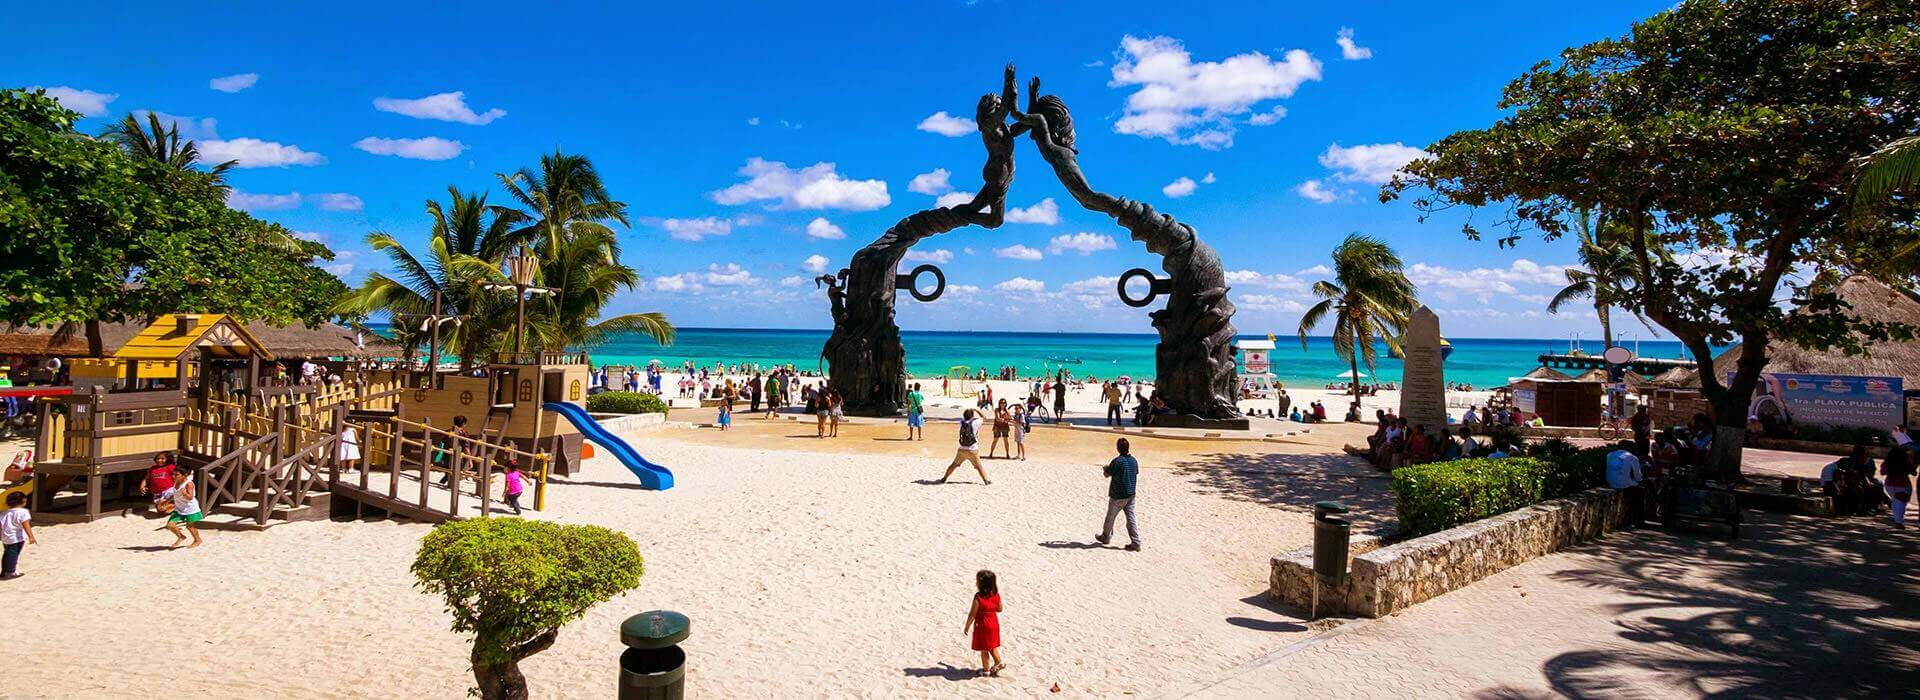 Resorts in Playa del Carmen for family vacations